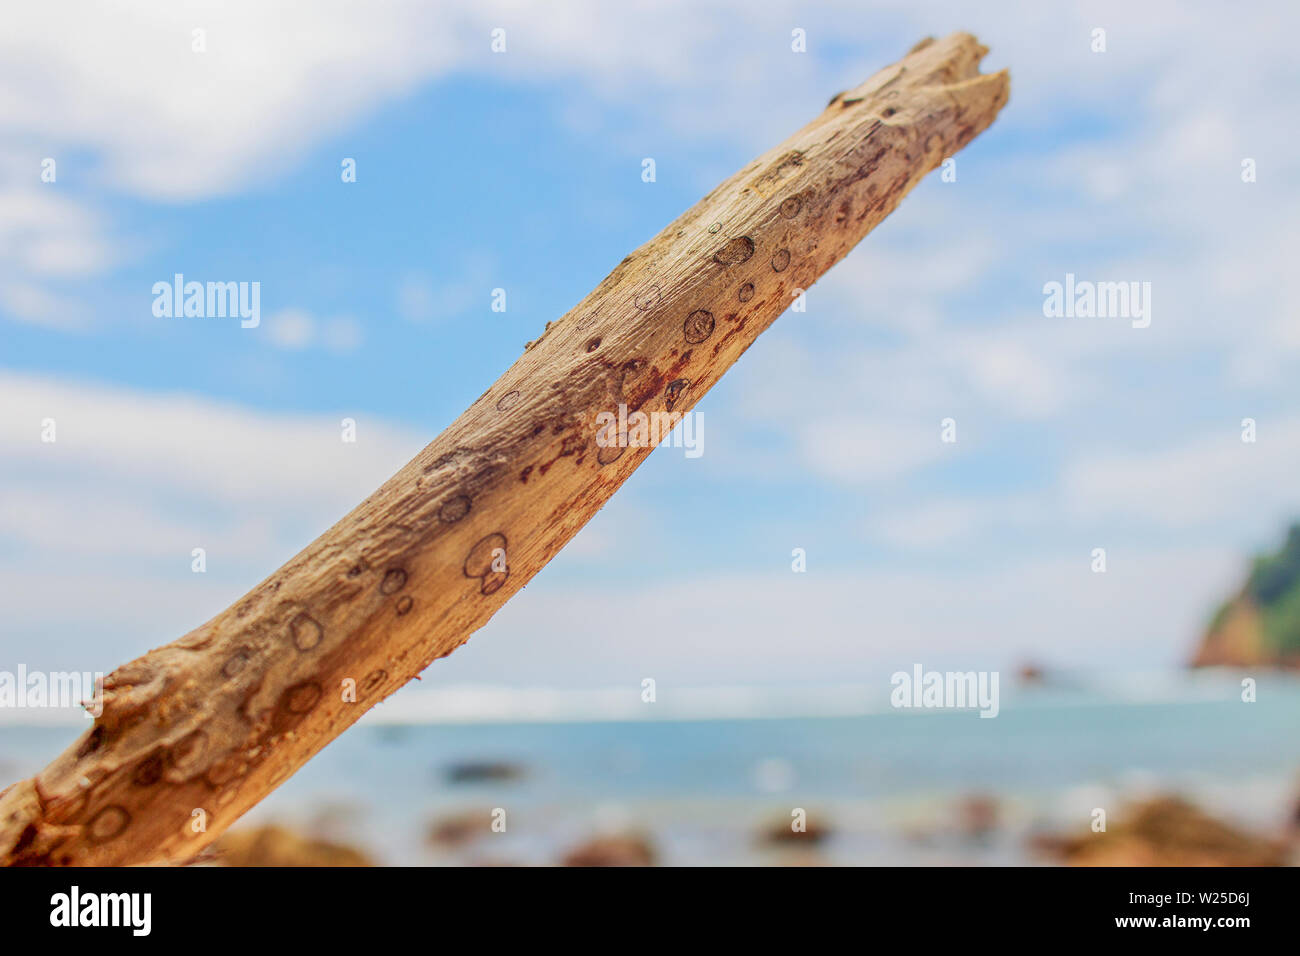 A Piece of Wood on Beach Stock Photo